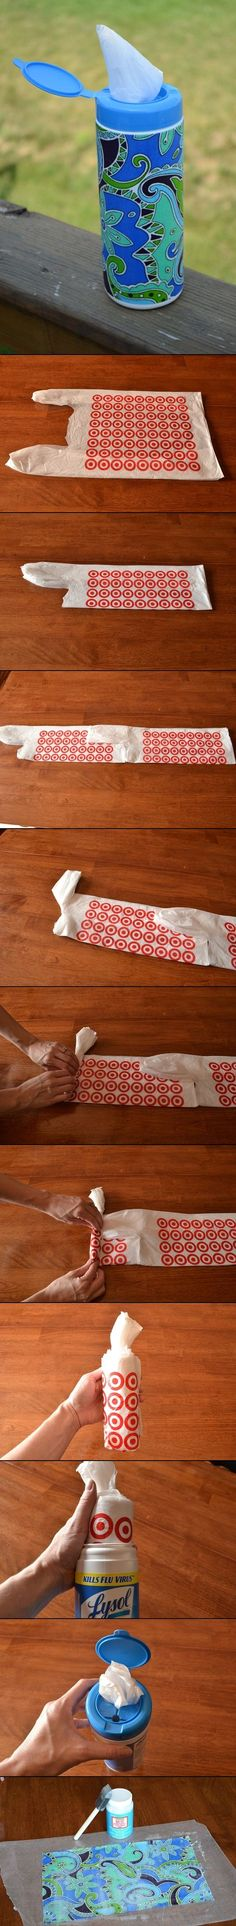 DIY plastic bag dispenser (with tutorial). I've been wondering how to roll the bags ...: